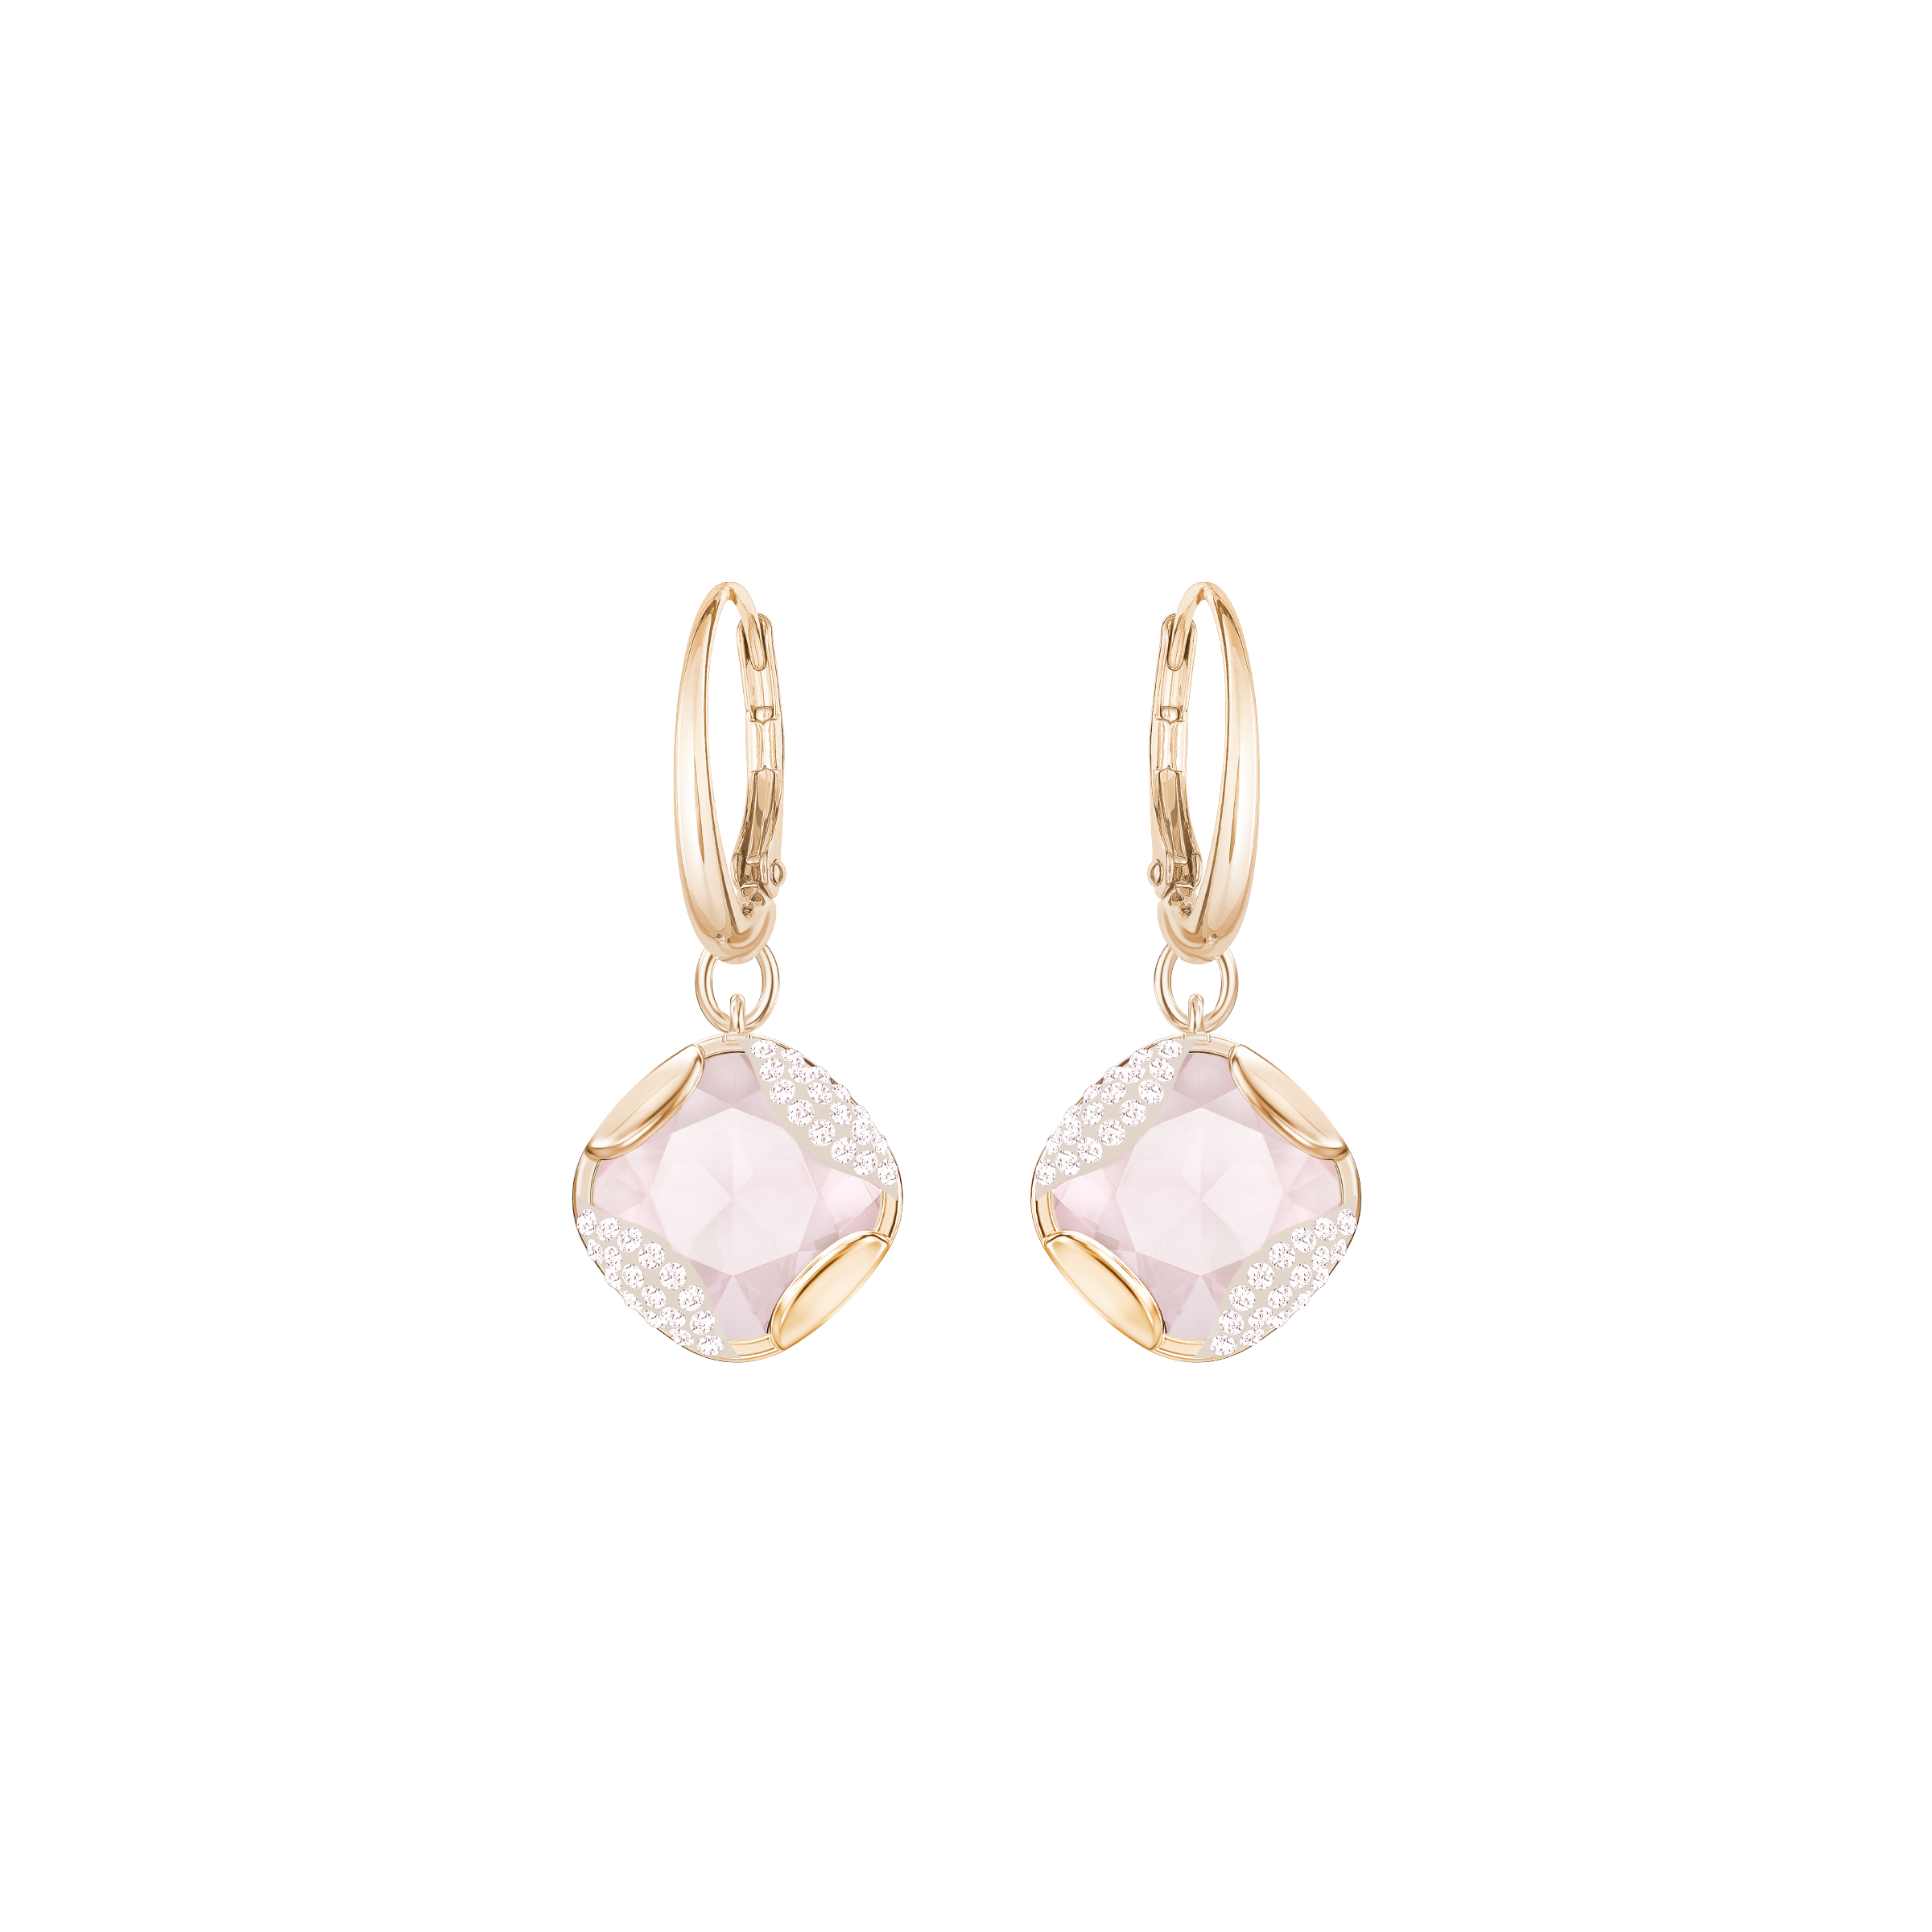 Heap Square Pierced Earrings, Pink, Rose-gold tone plated